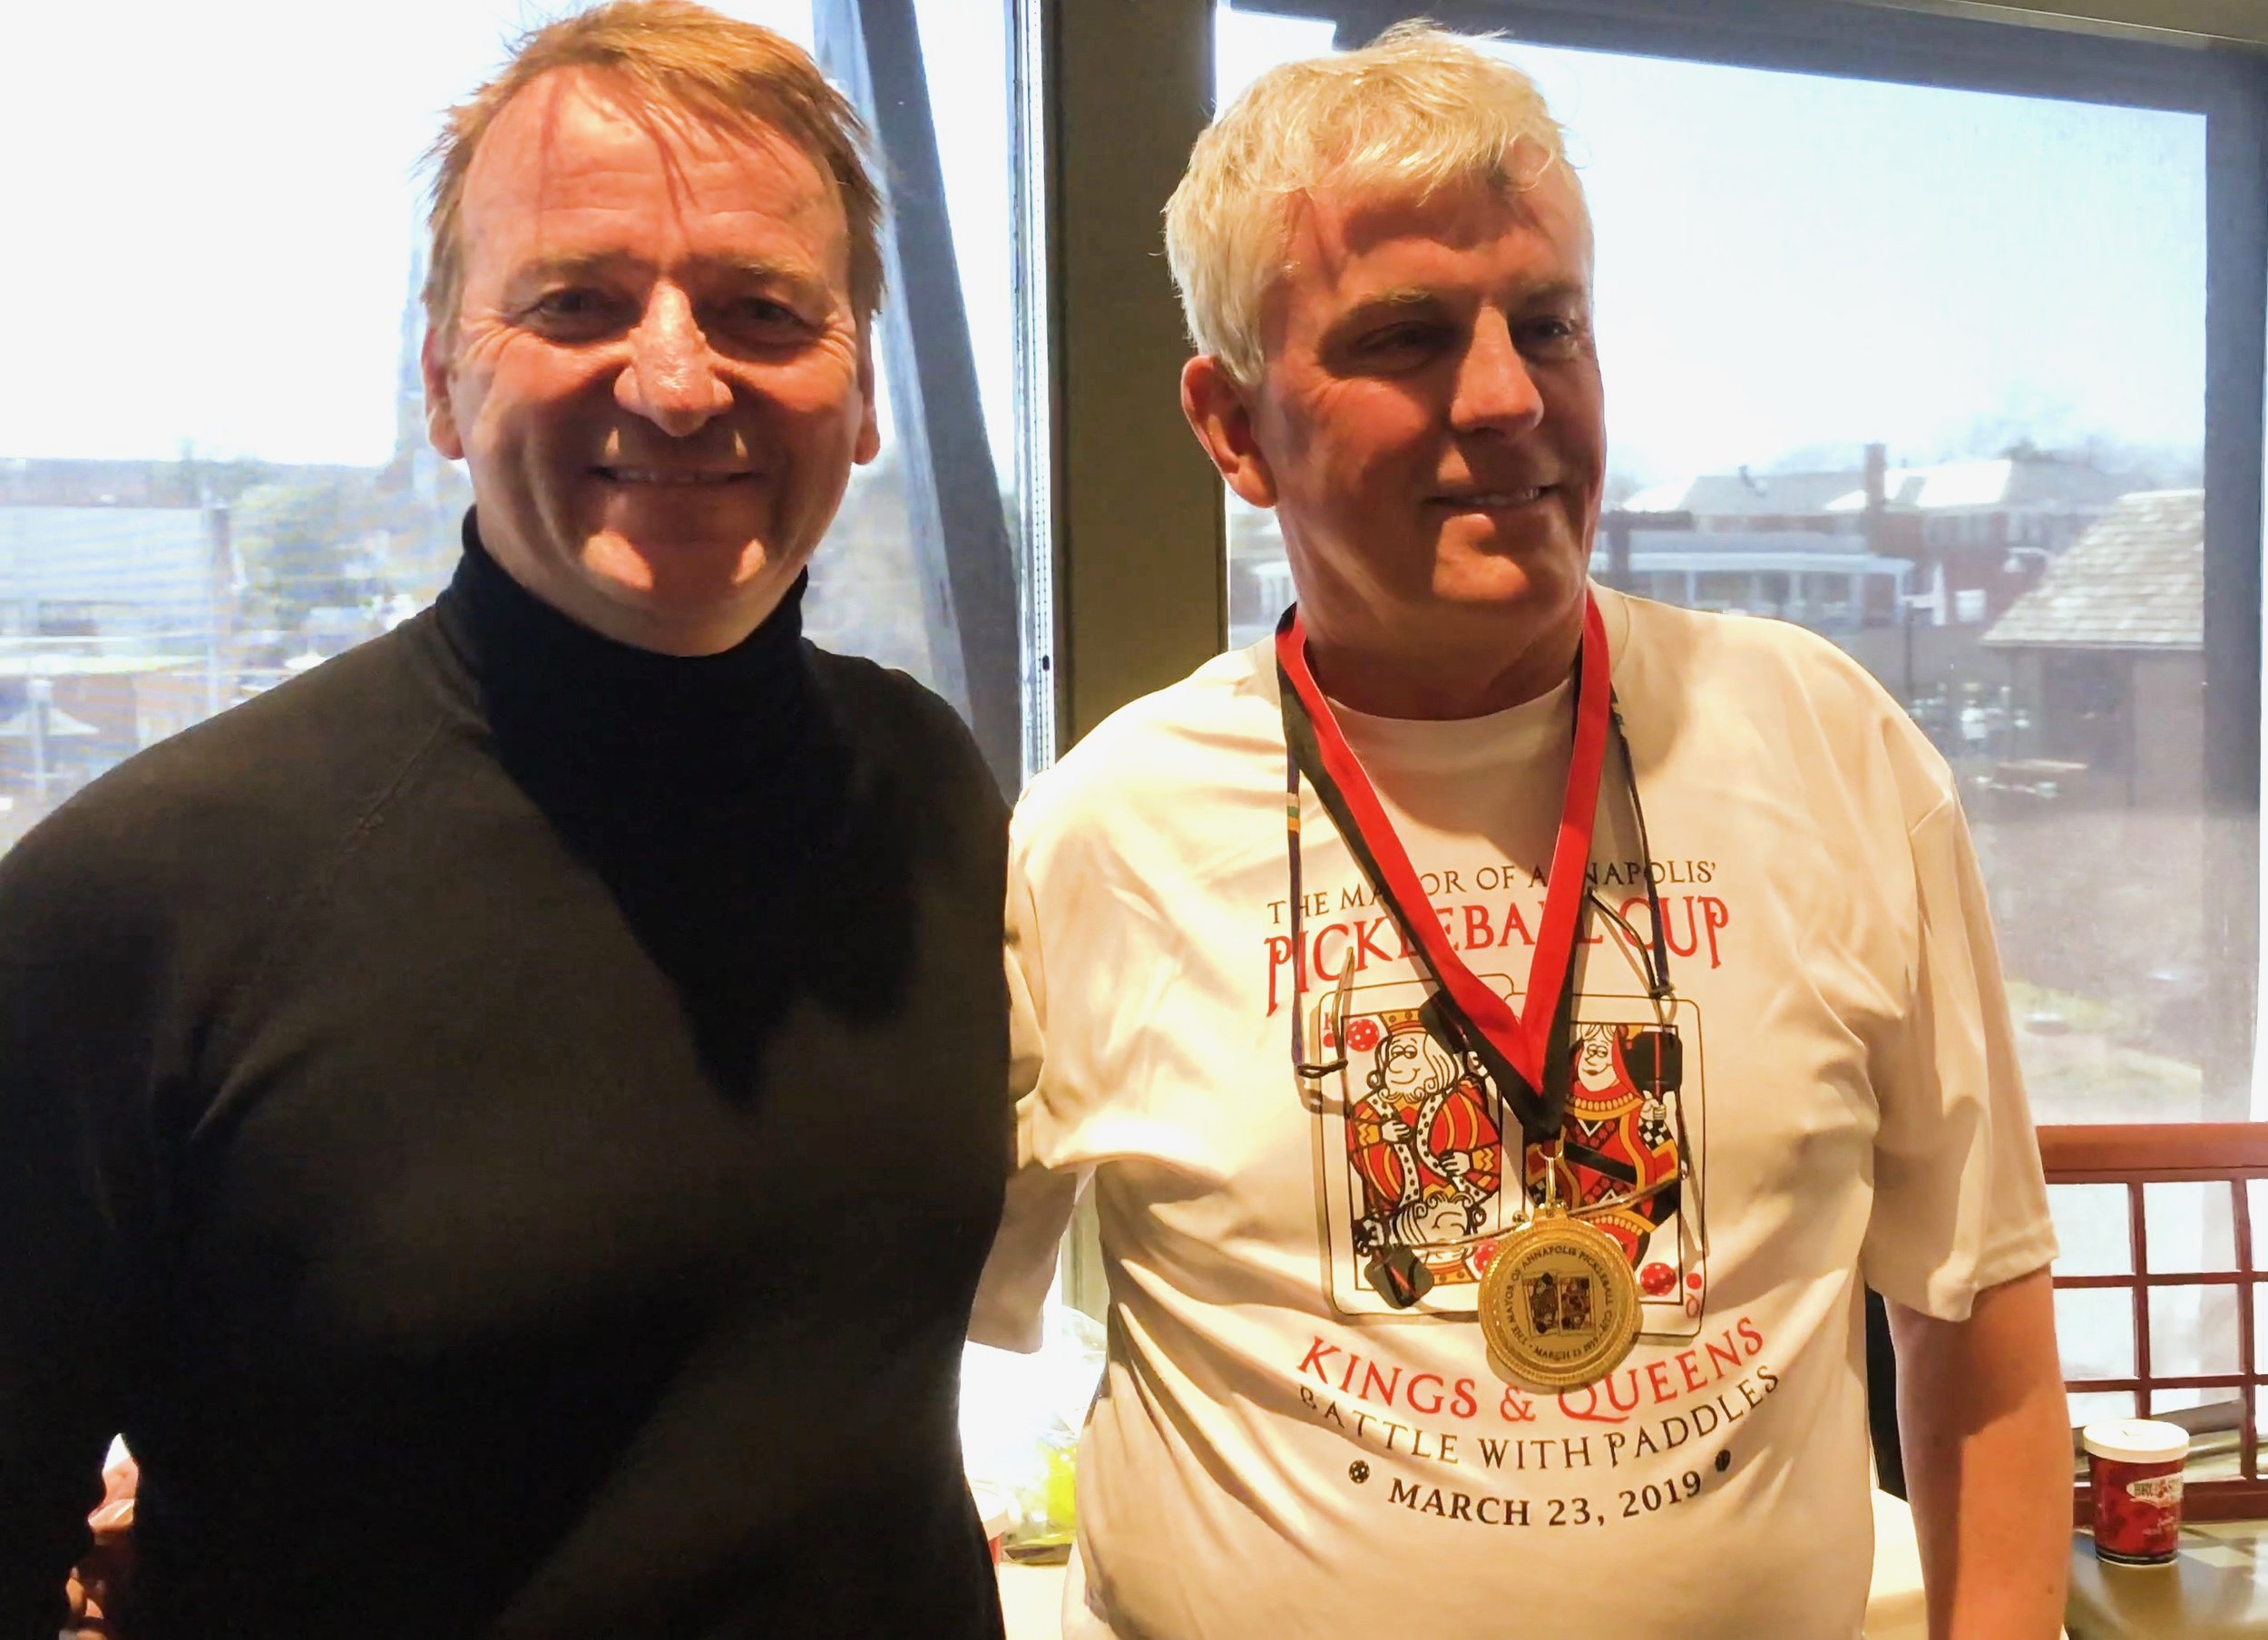 Eastport Pickleball presents the Mayor of Annapolis' Pickleball CupMarch 23, 2019 - In less than 8 weeks, Eastport Pickleball created a tournament worth remembering.